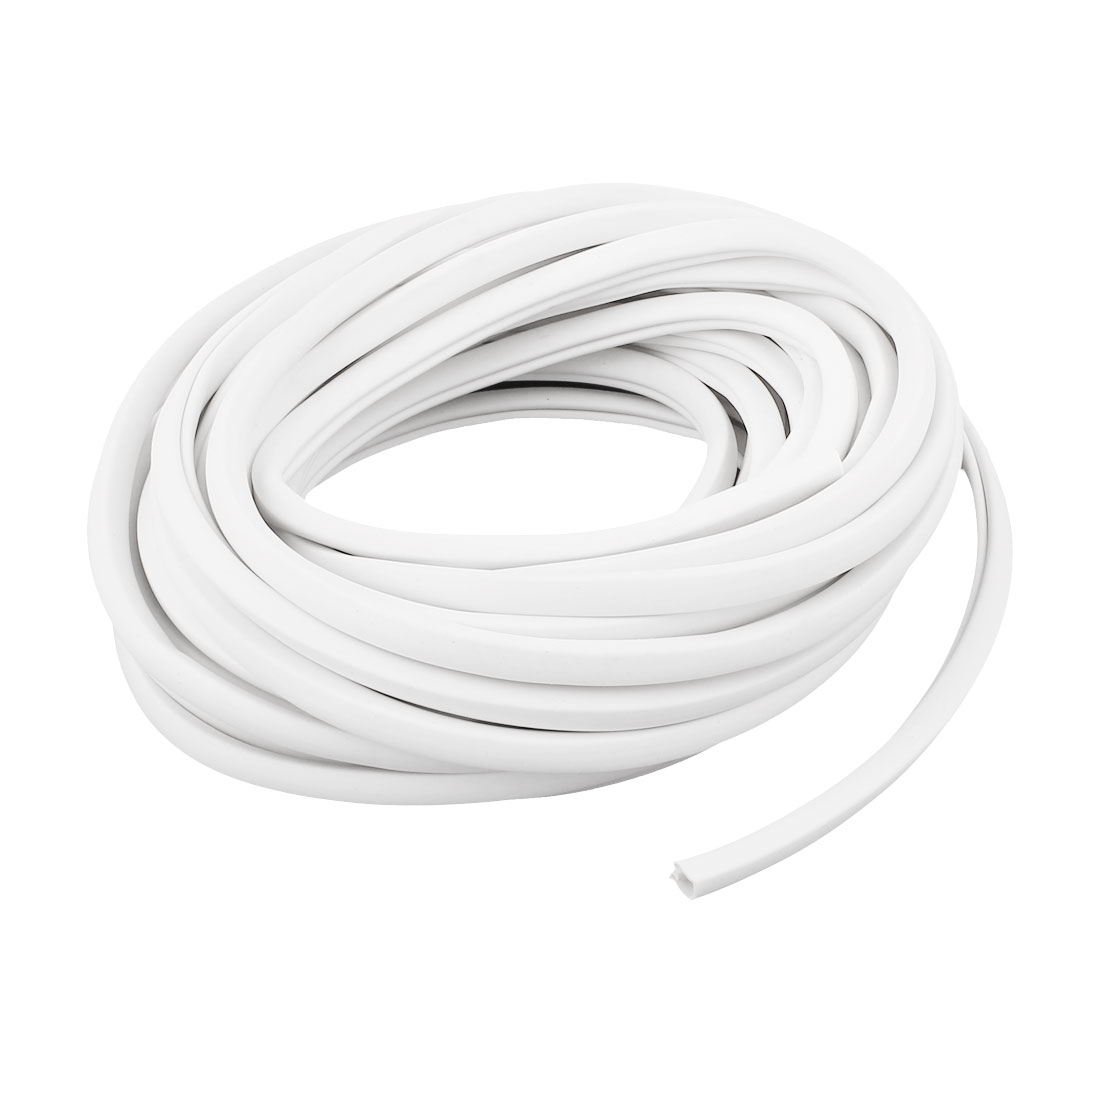 PVC Concave Conversed Blank Write-On Flexible Cable Markers Labels White 10m Long